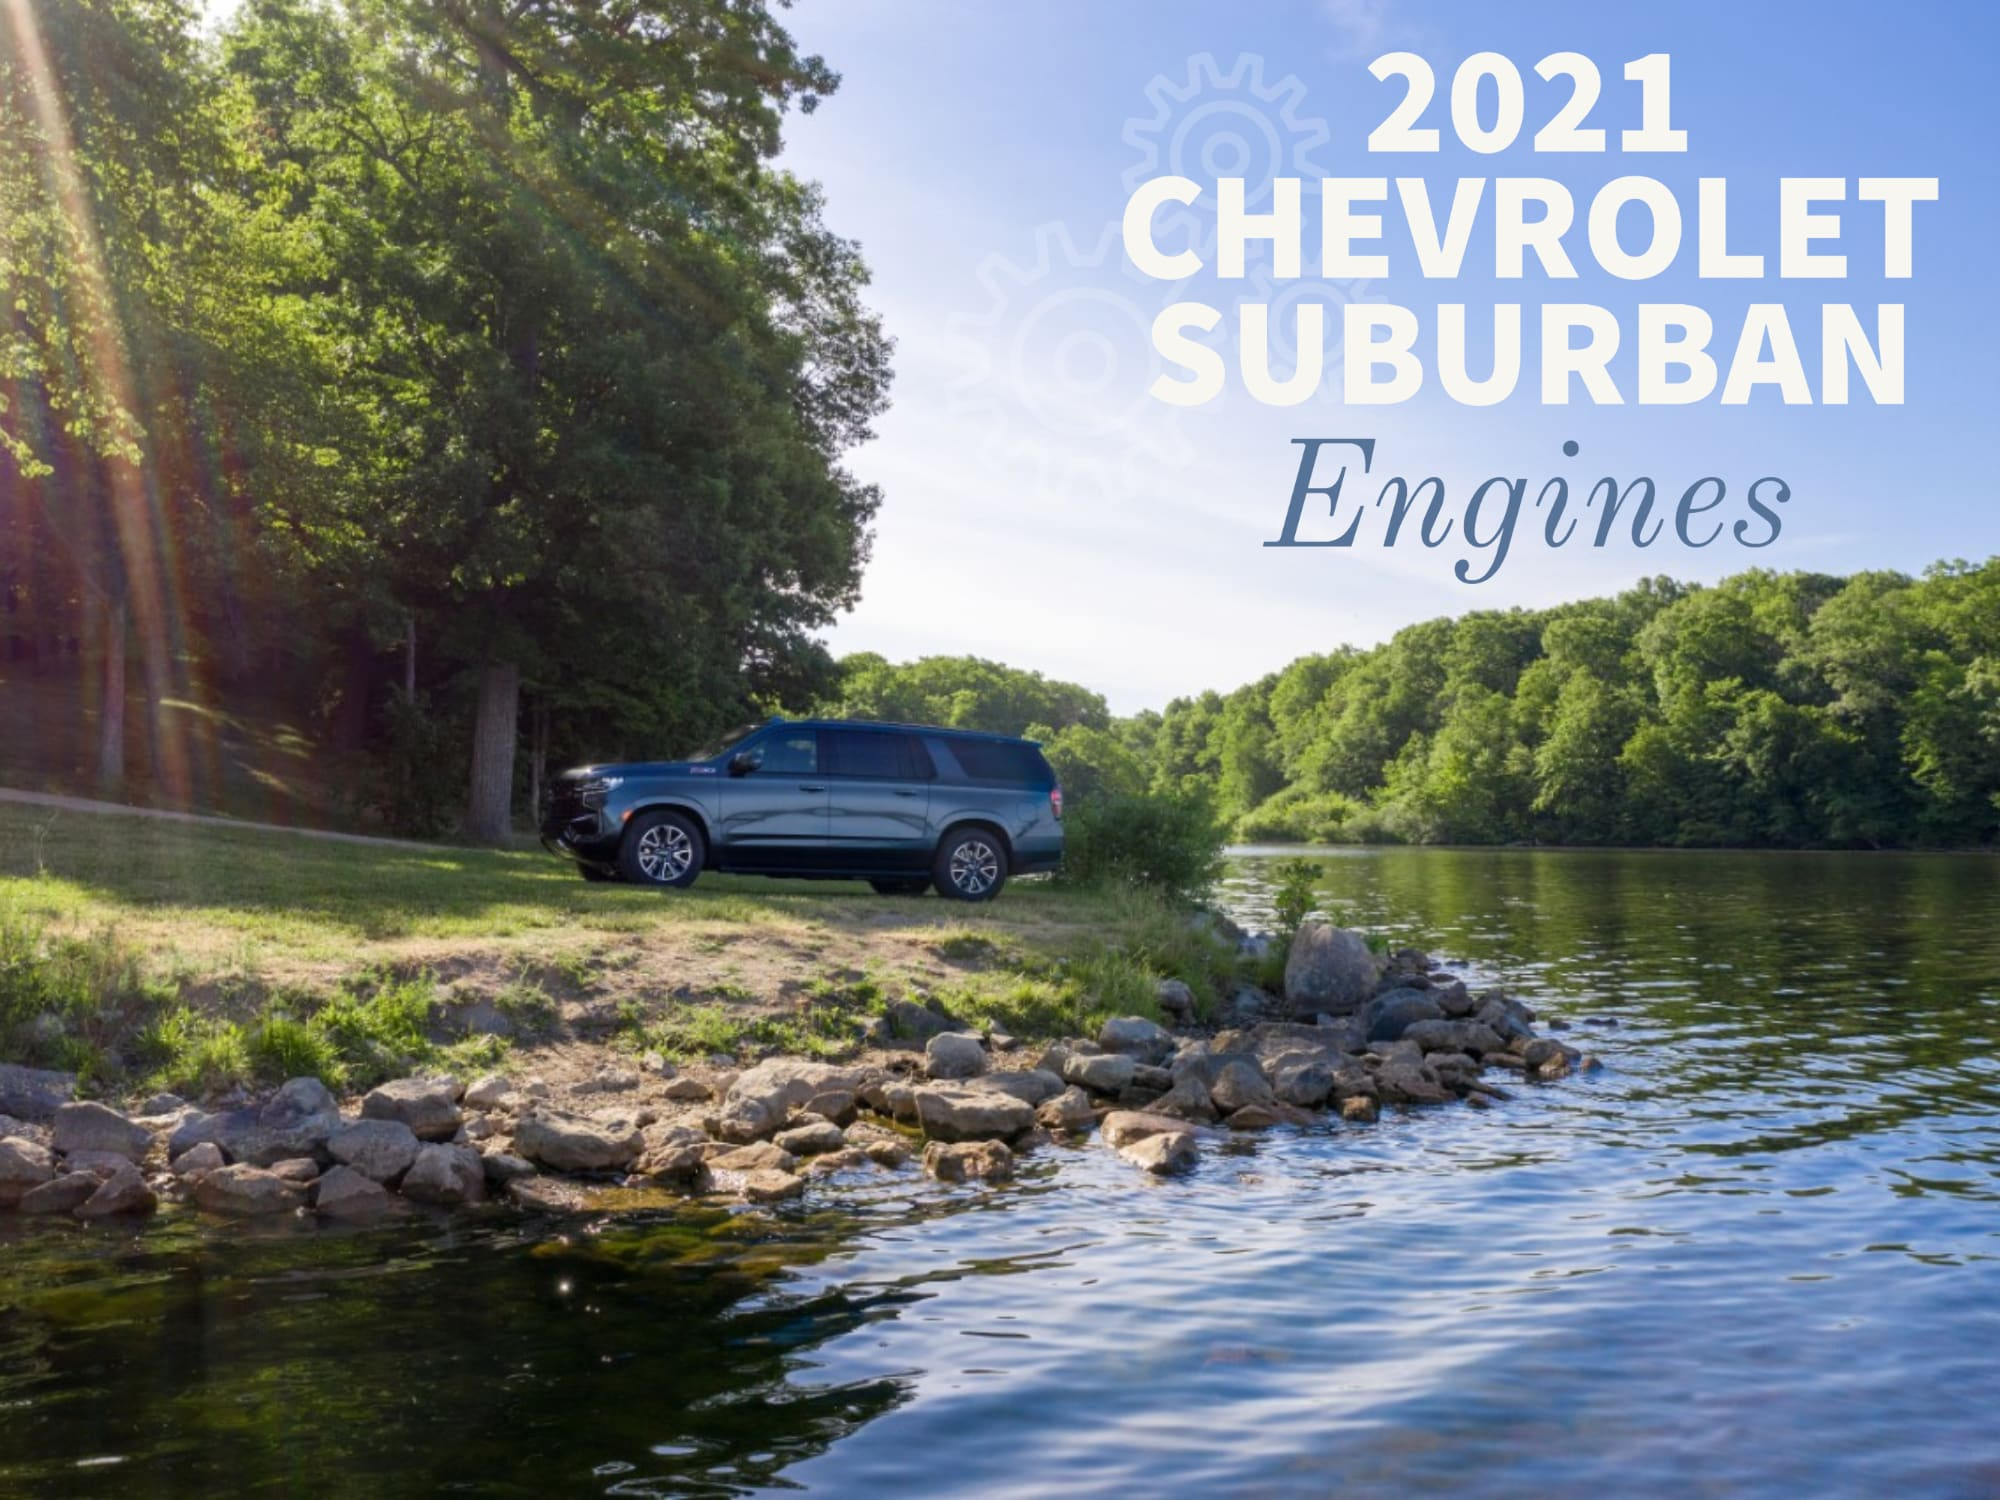 Landscape with Water and Trees, Chevrolet Suburban parked by water